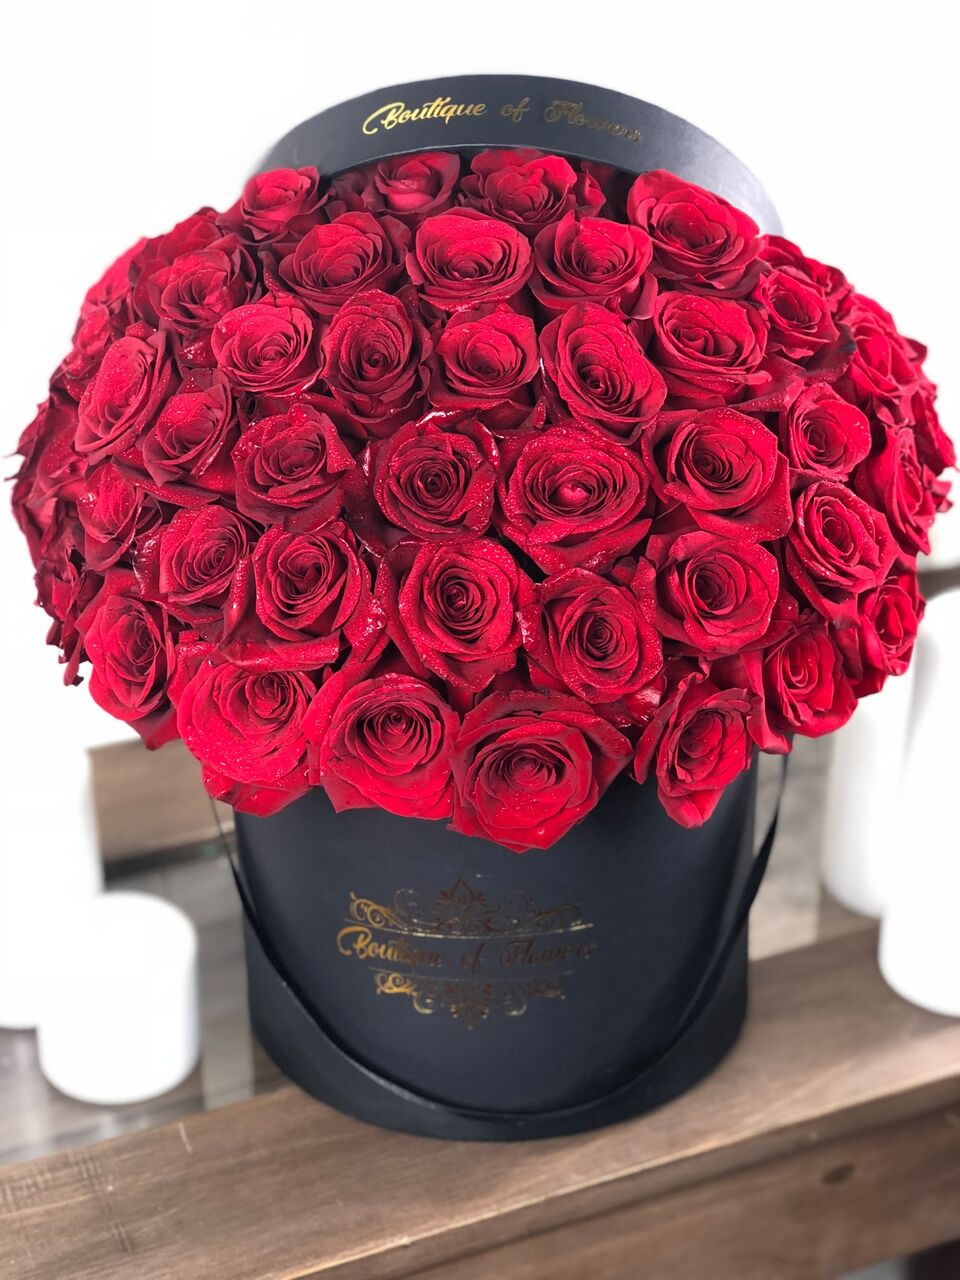 50 RED ROSE ROUND BOX